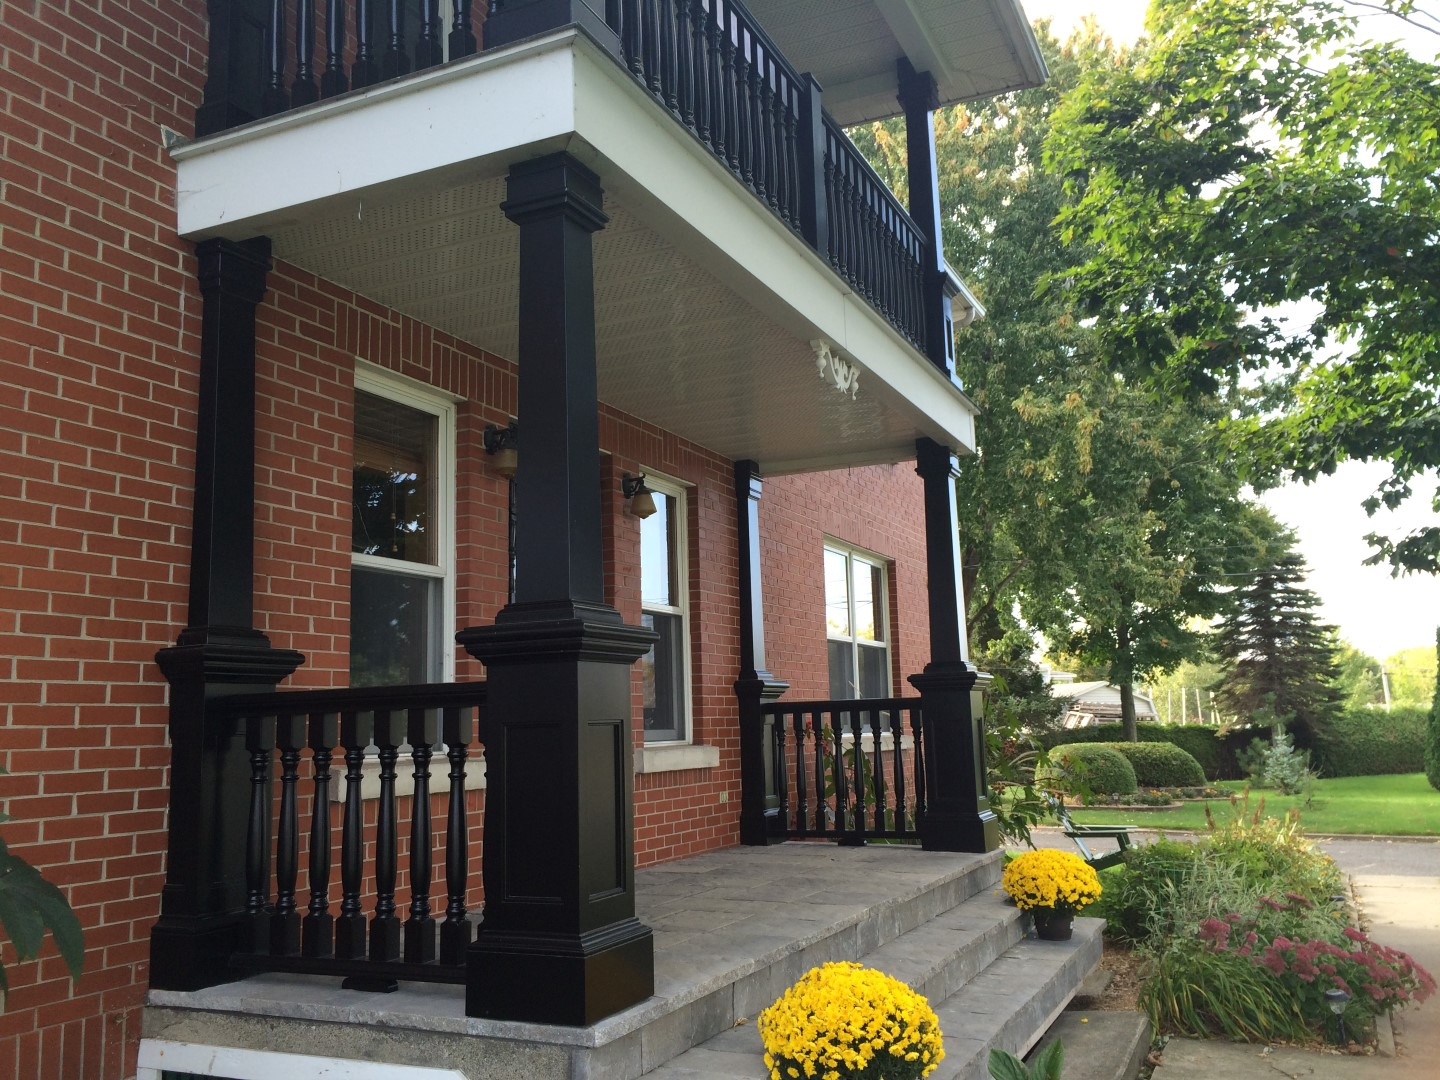 Balustrades, Railings and Balusters